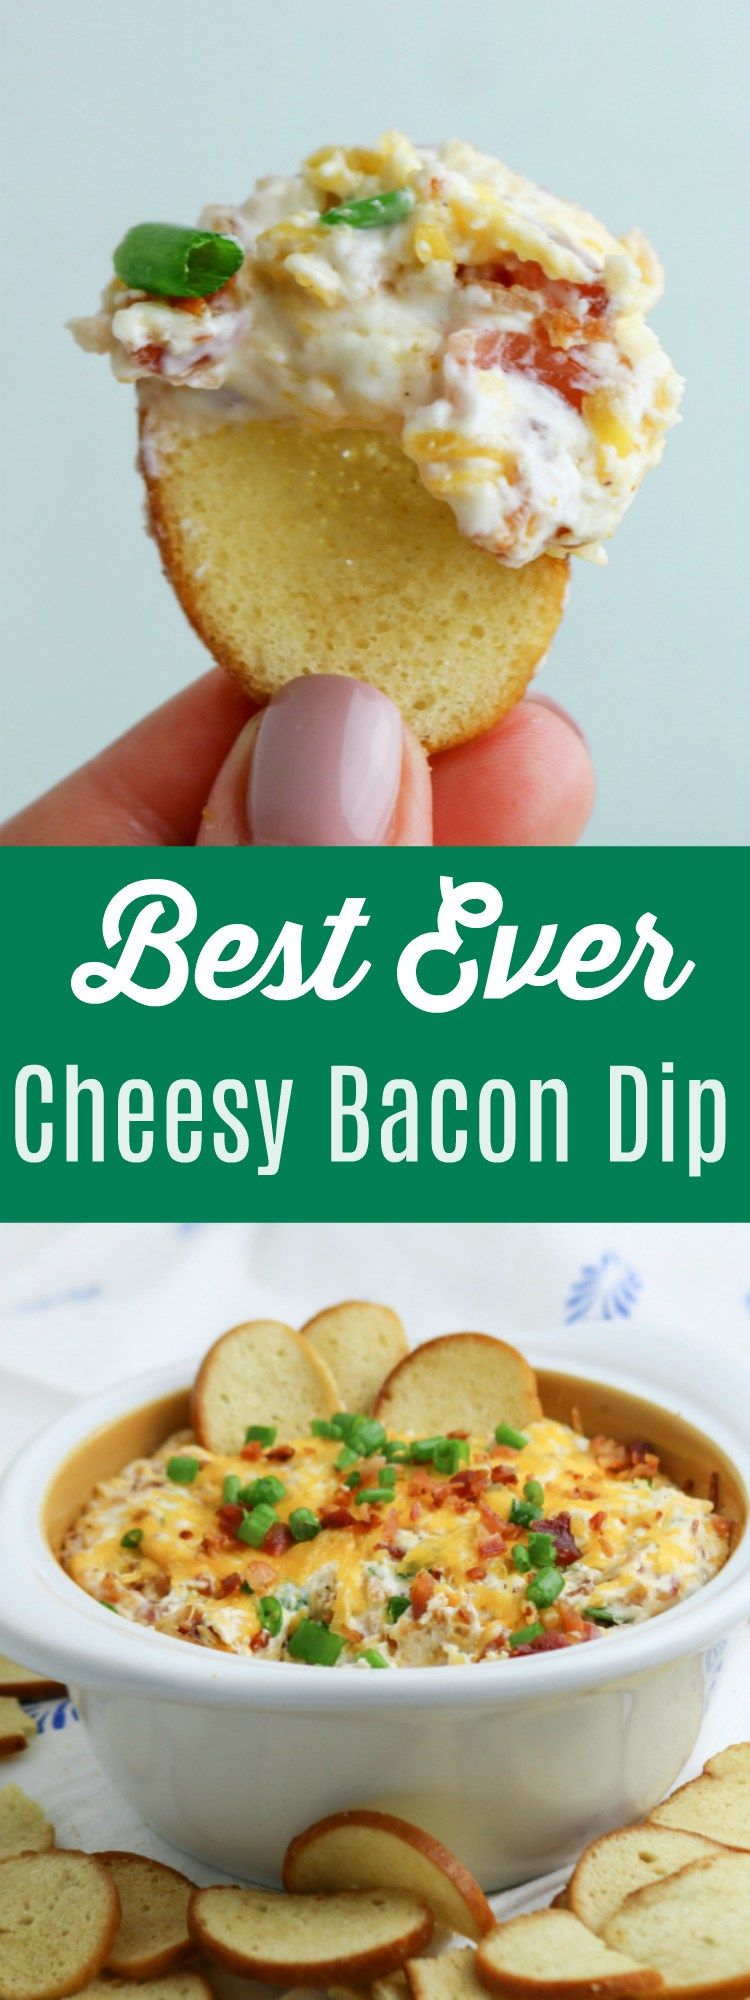 Cheesy Bacon Dip Appetizer #tailgatefood